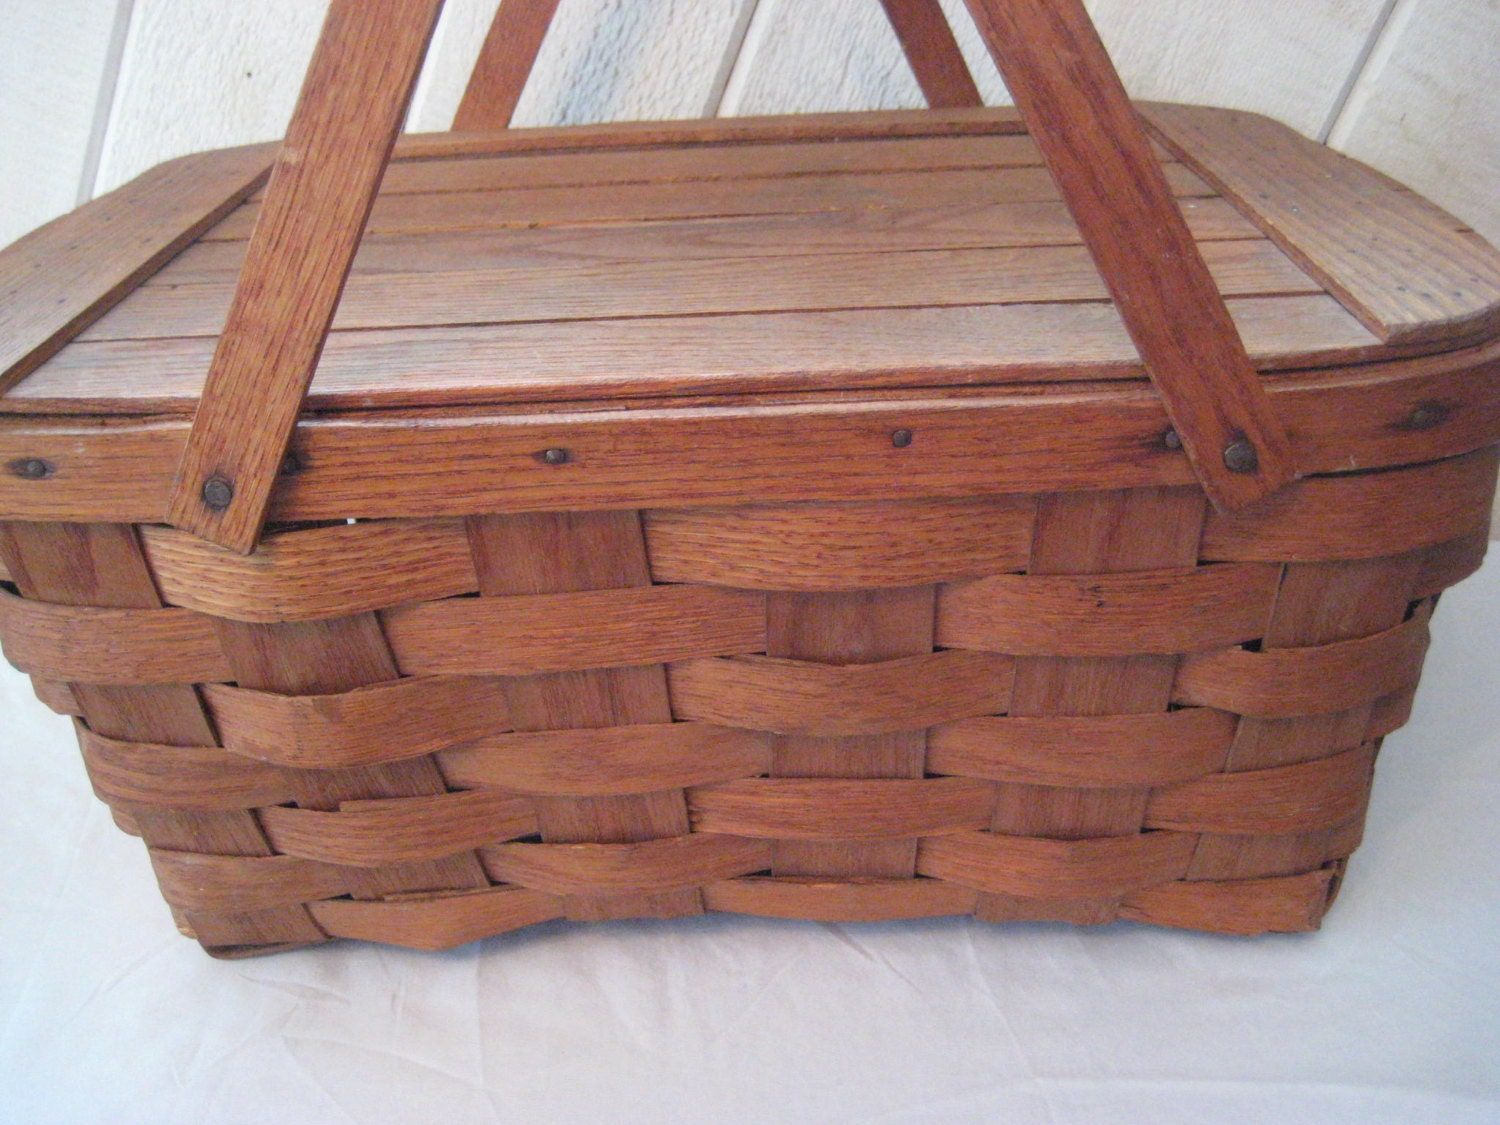 How To Weave A Basket Out Of Reeds : Vintage s picnic basket reed woven with slat